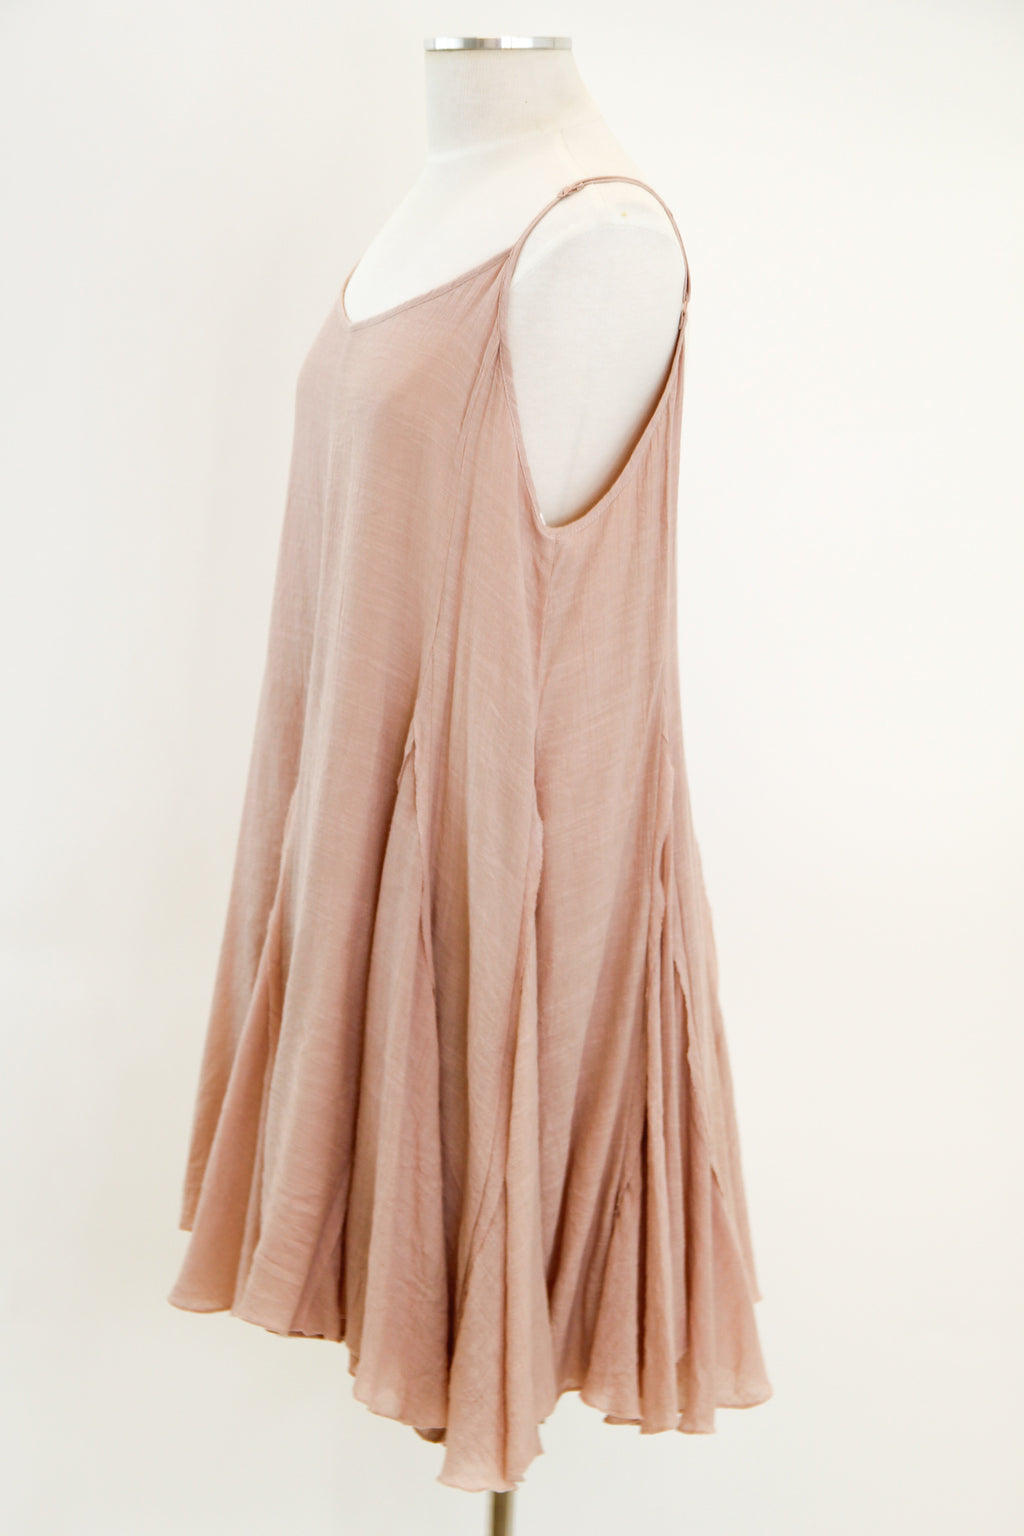 Go With The Flow Dress - Blush